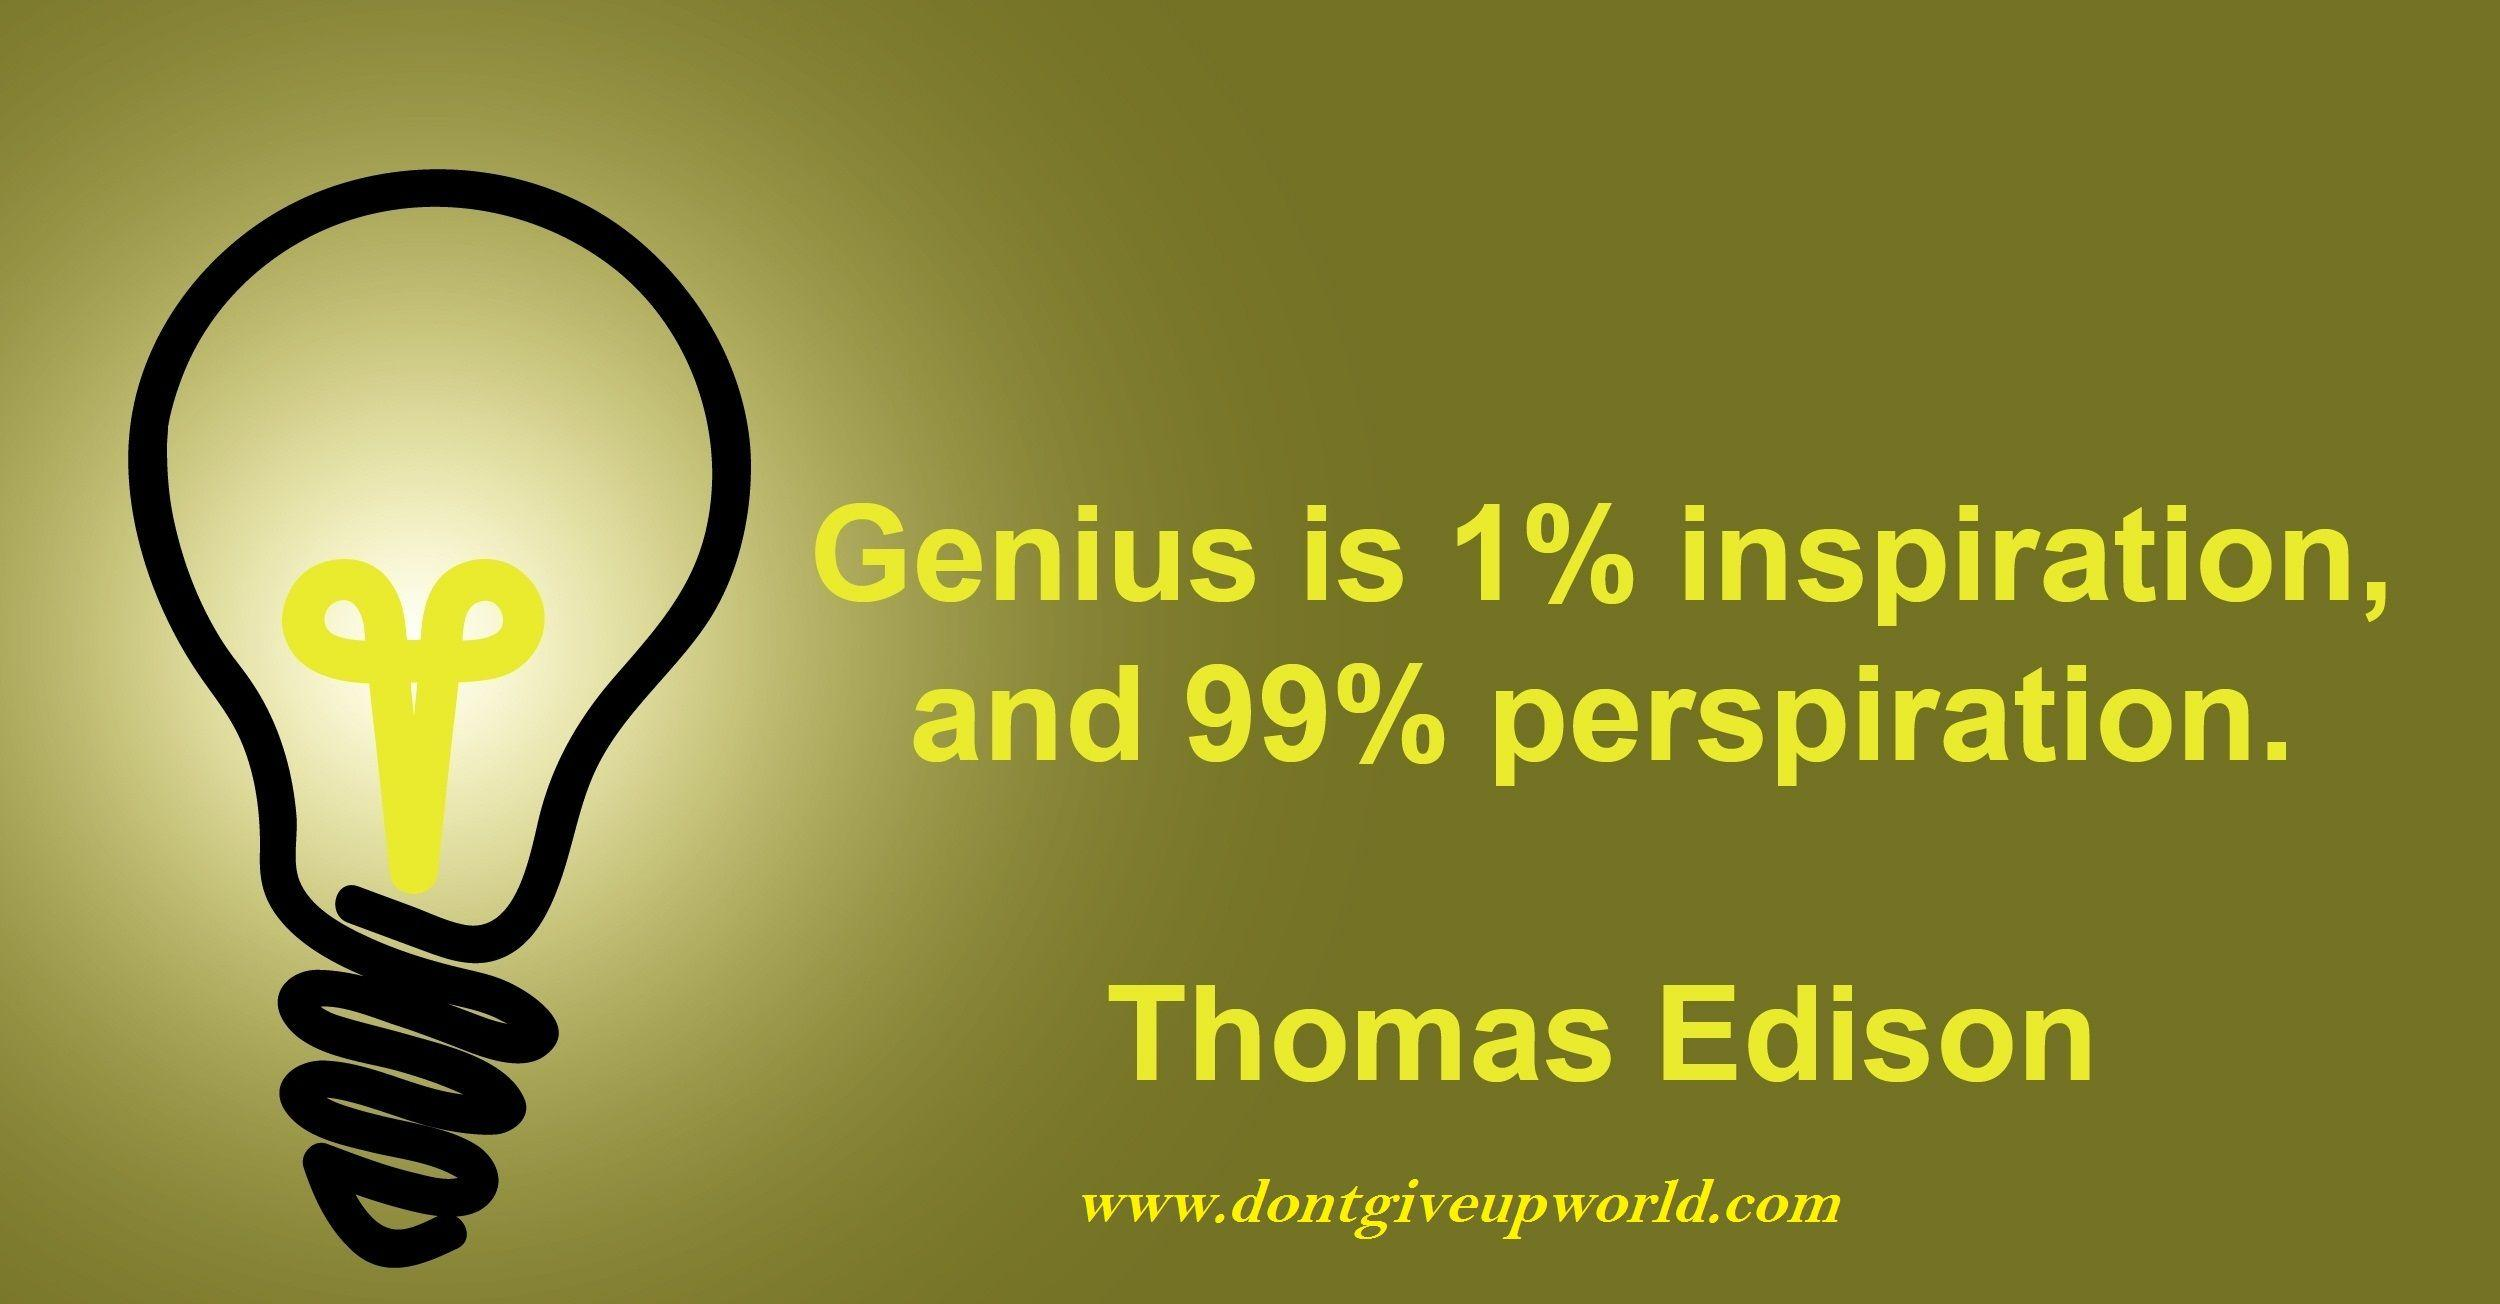 Wallpapers on inspiration,perspiration and genius by Thomas Edison